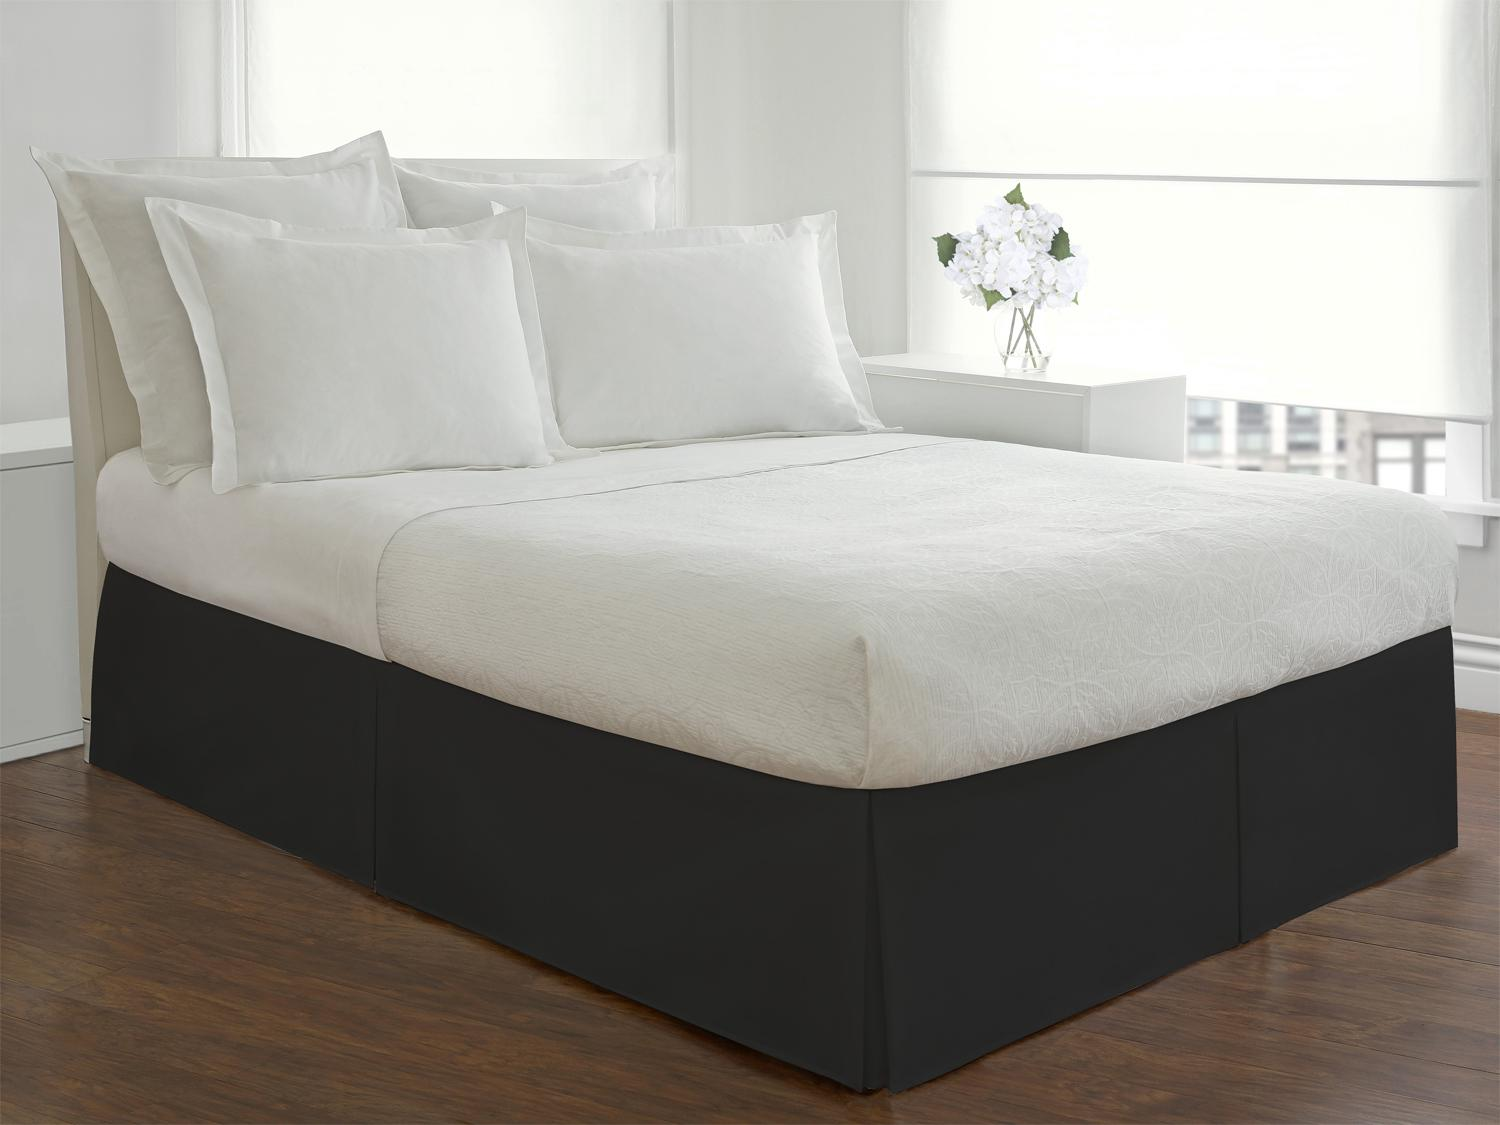 Lux Hotel Bedding Tailored Bedskirt Classic 14 Drop